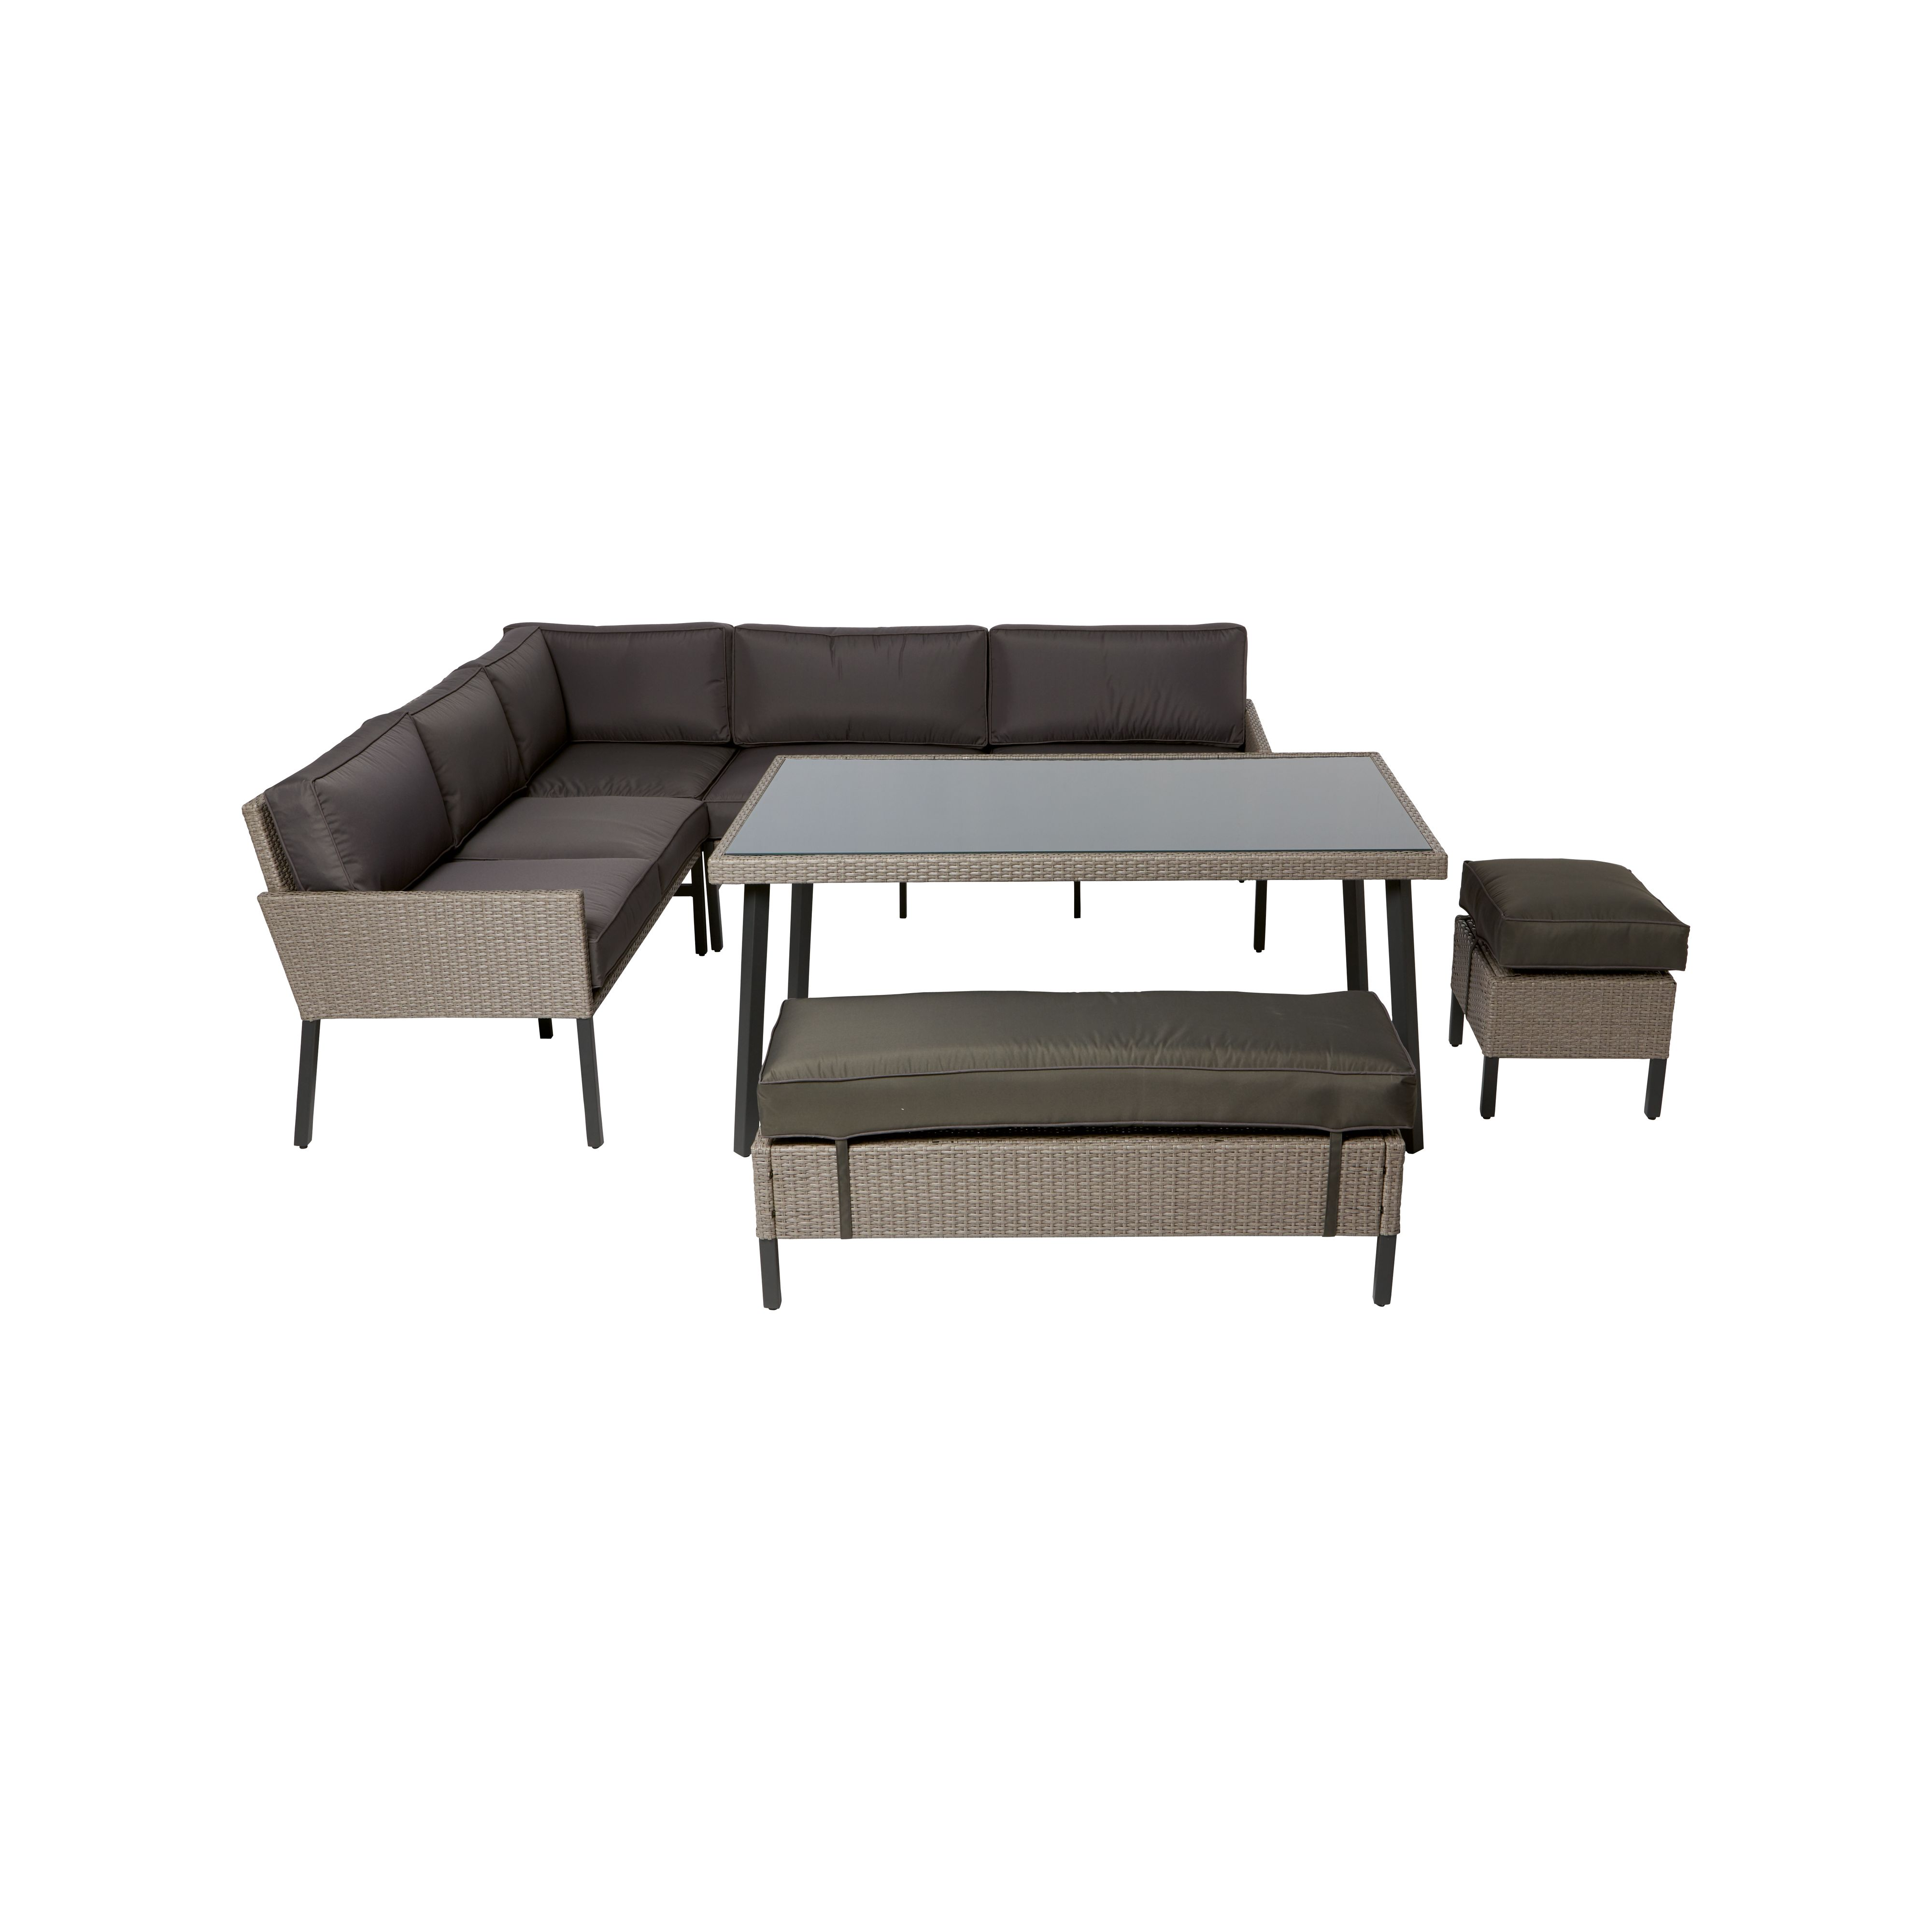 palermo rattan effect corner sofa set cover grand island large 7 seat sectional